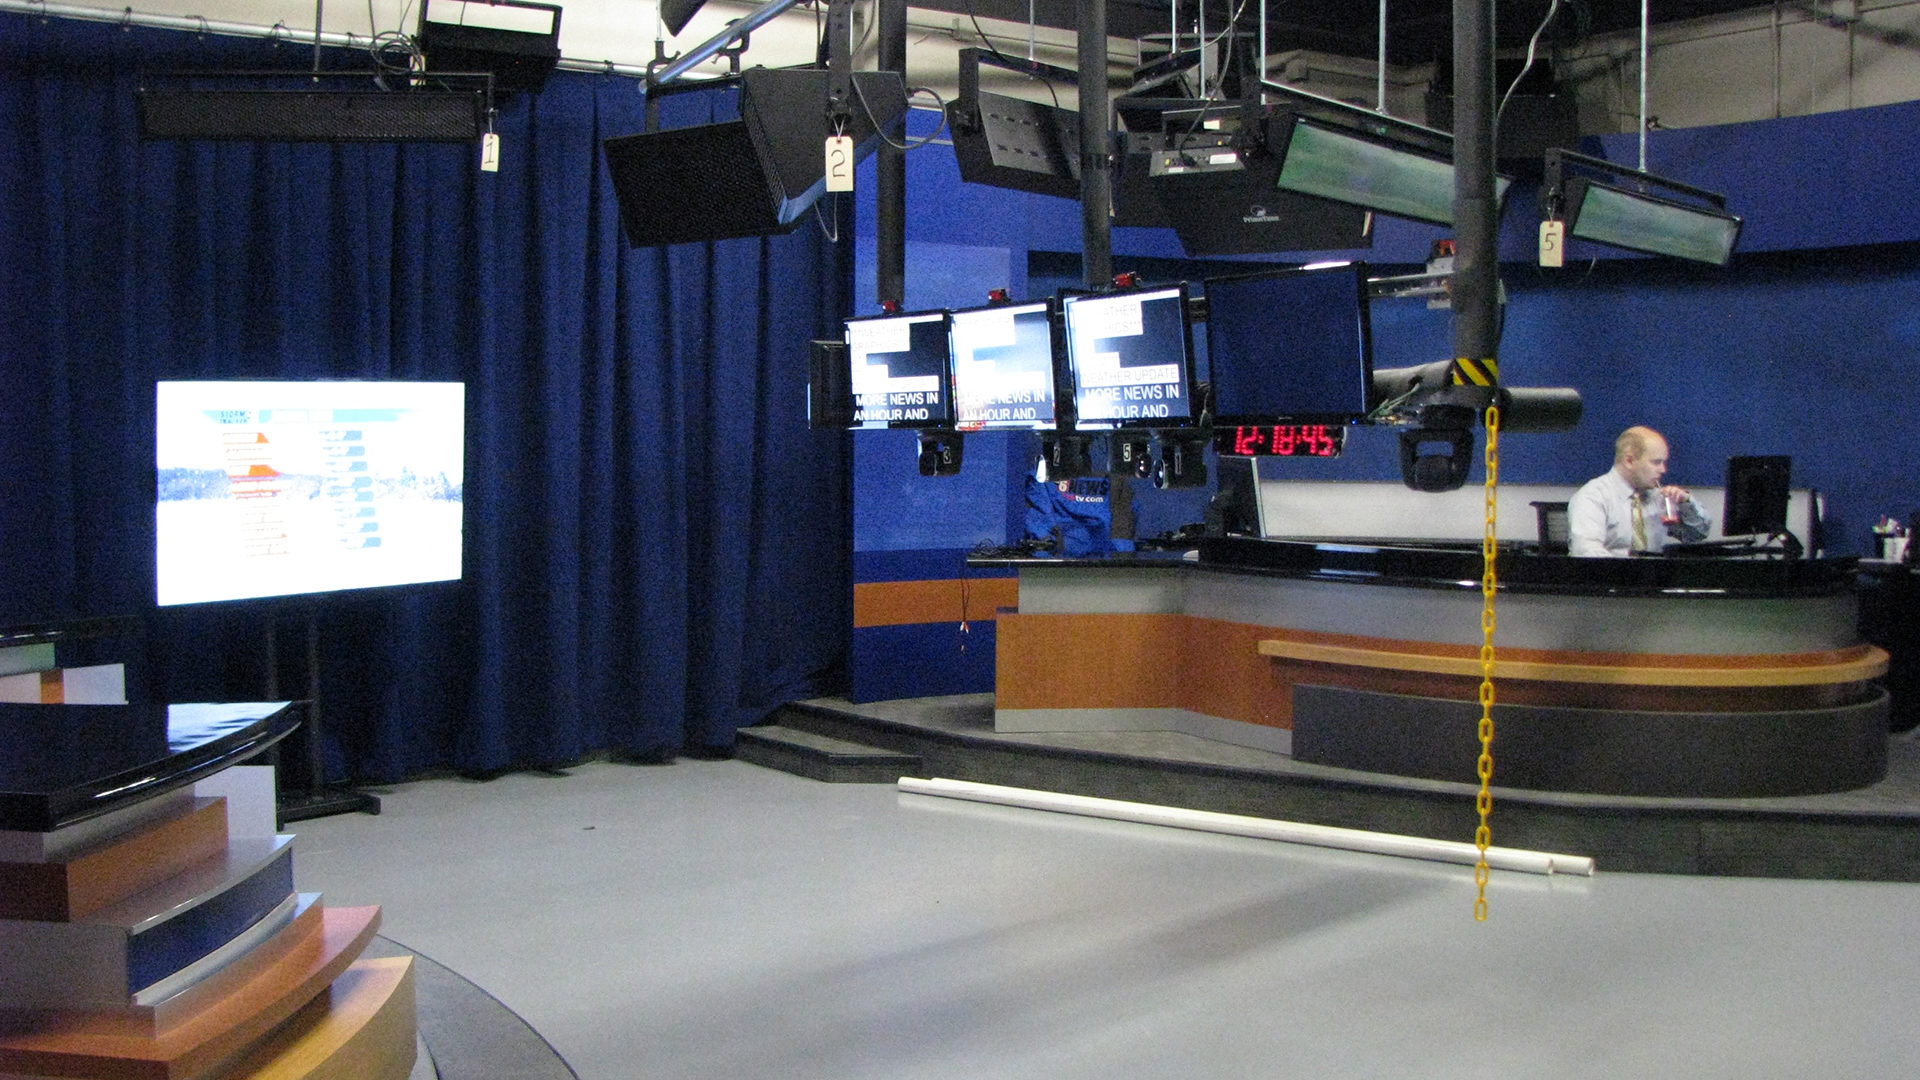 KAAL TV Studio Rochester ABC 6 News Interior Set